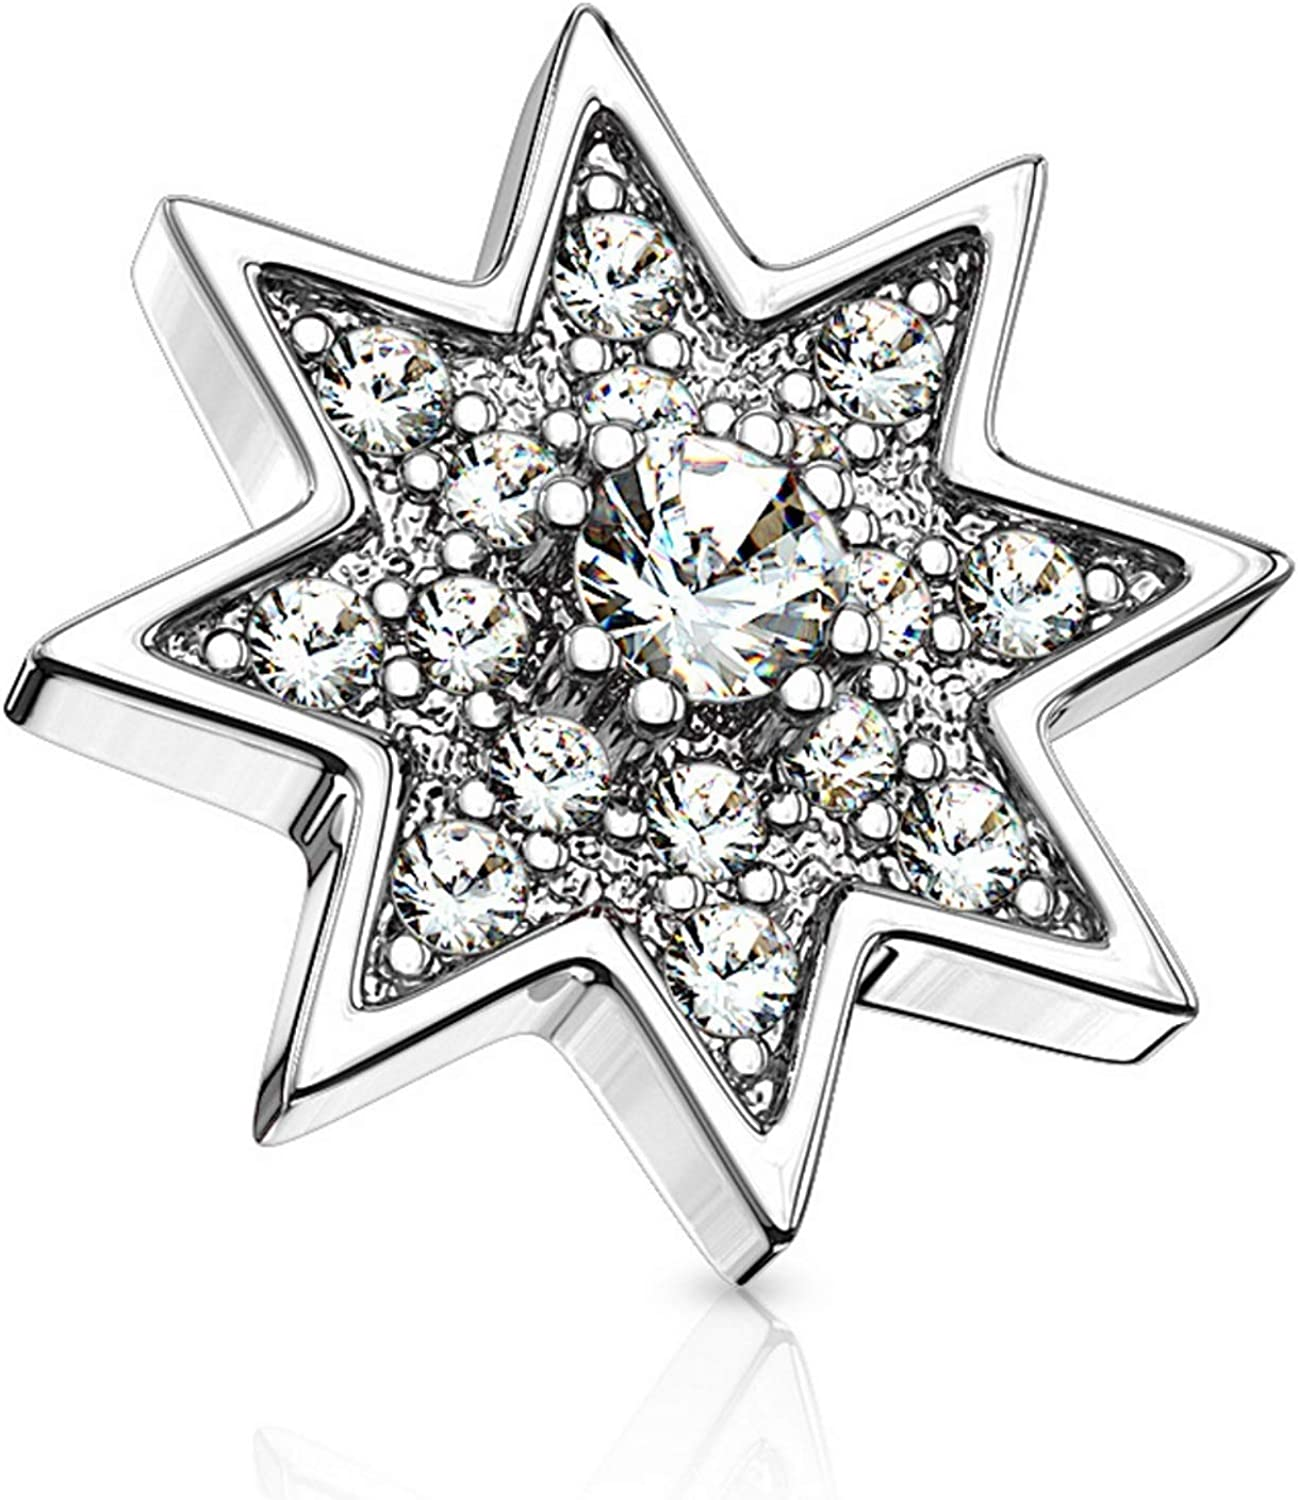 BYB Jewelry Purchase CZ Paved Starburst Anchor Steel Surgical Max 68% OFF Top Dermal